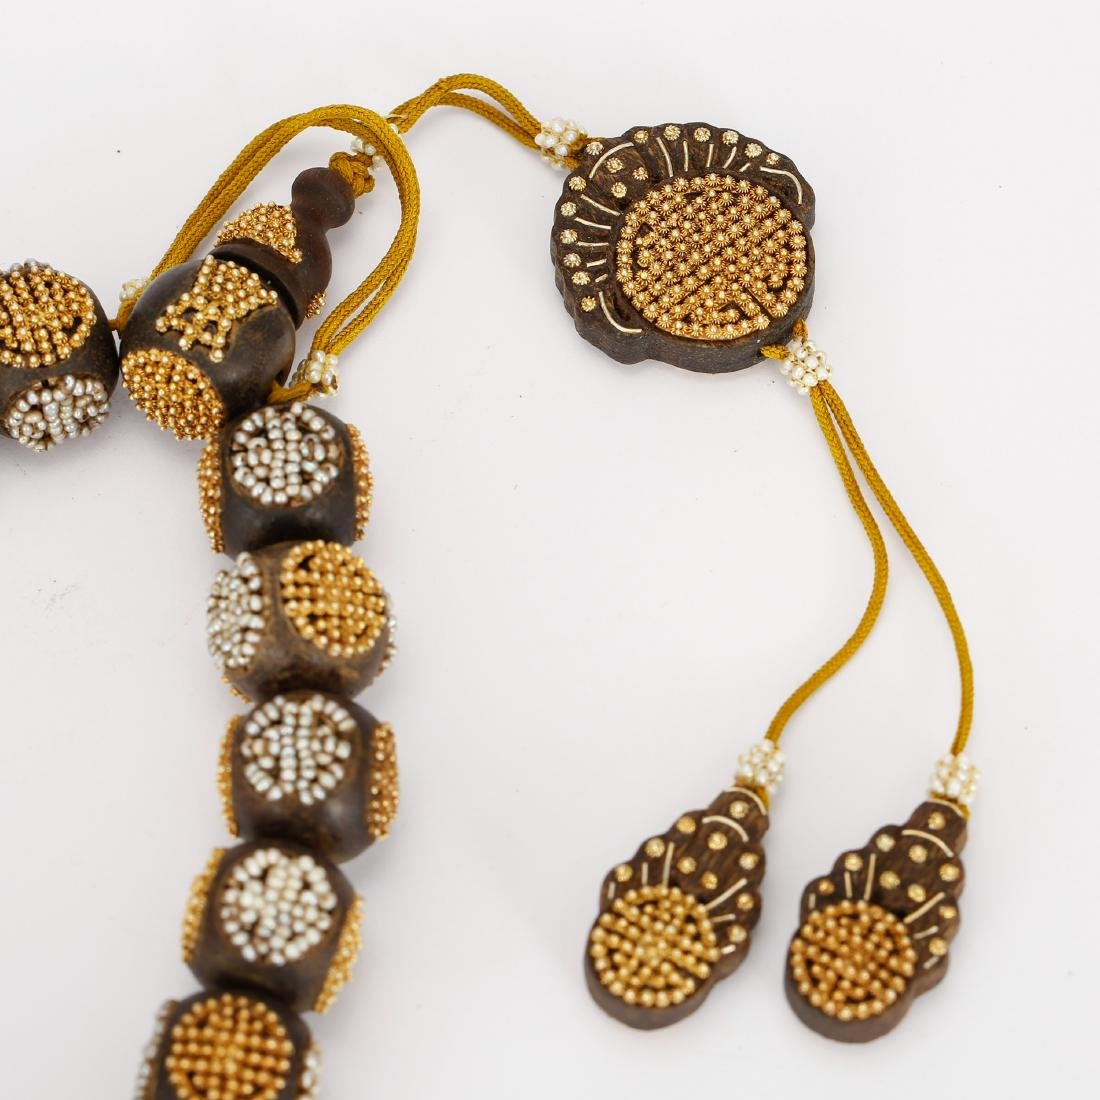 CHINESE QING DYNASTY CHENXIANG BEADS BRACELET - 4